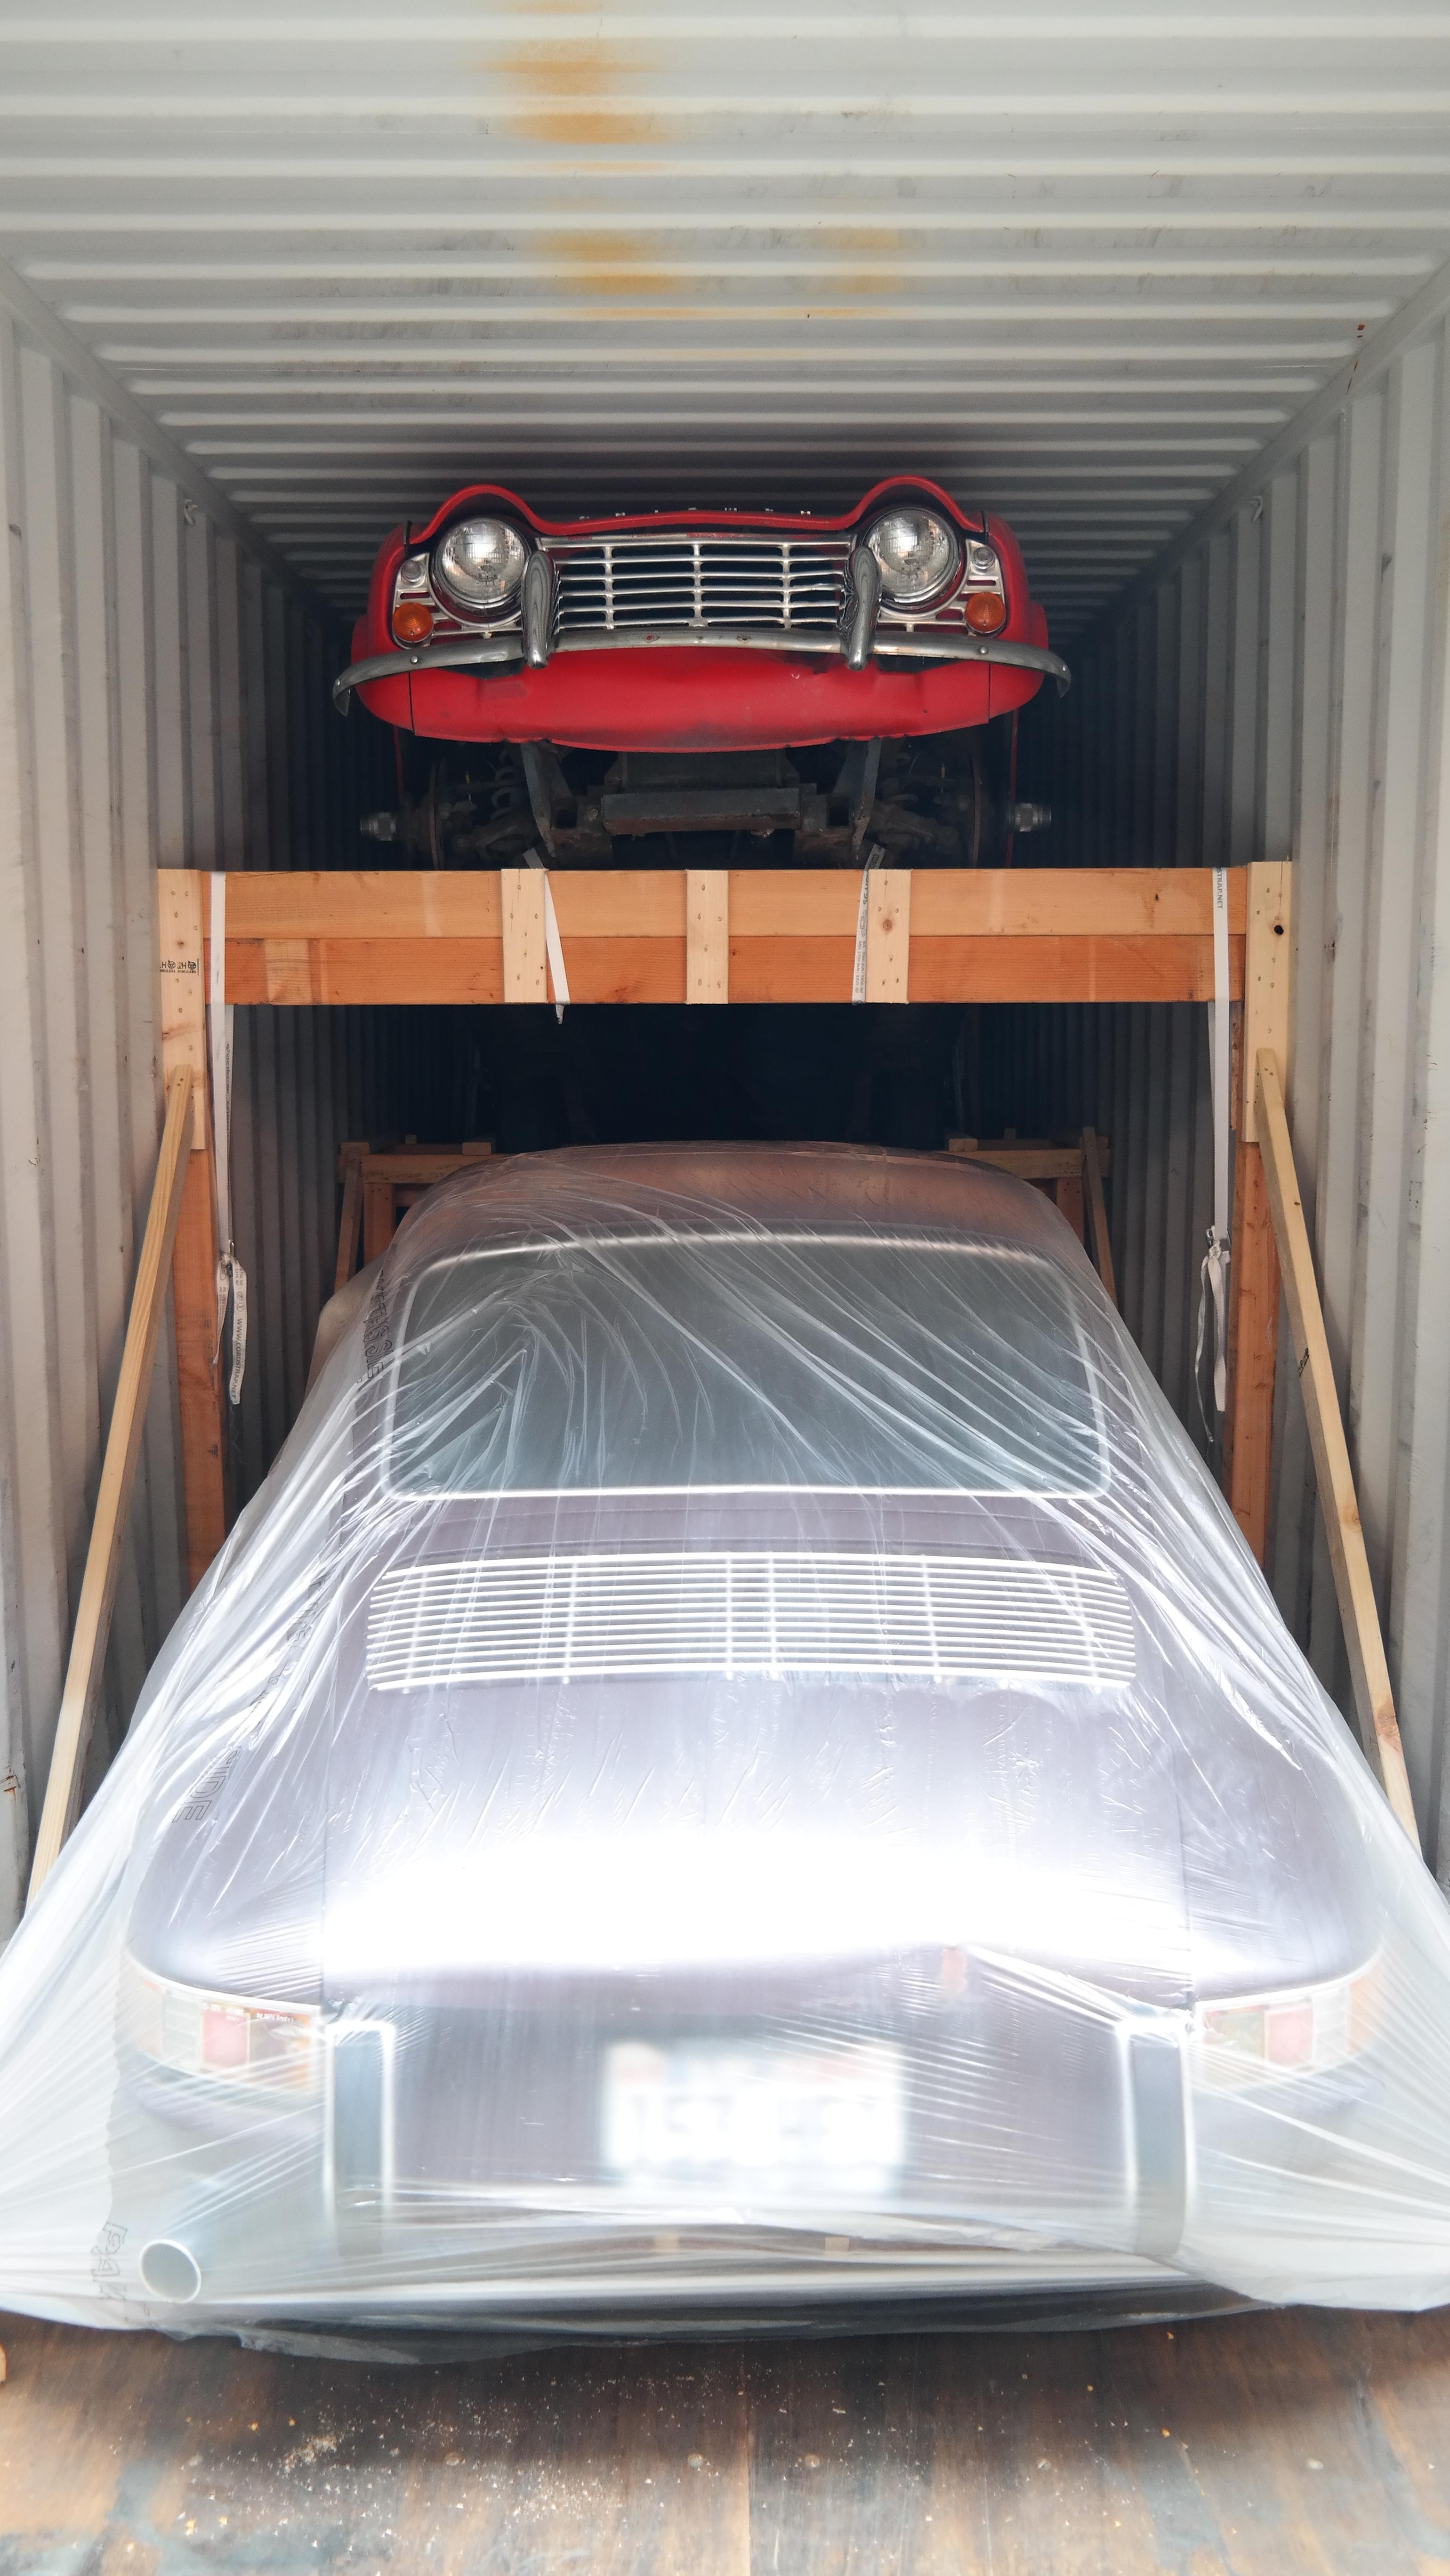 Classic Cars loaded and shipped in a container